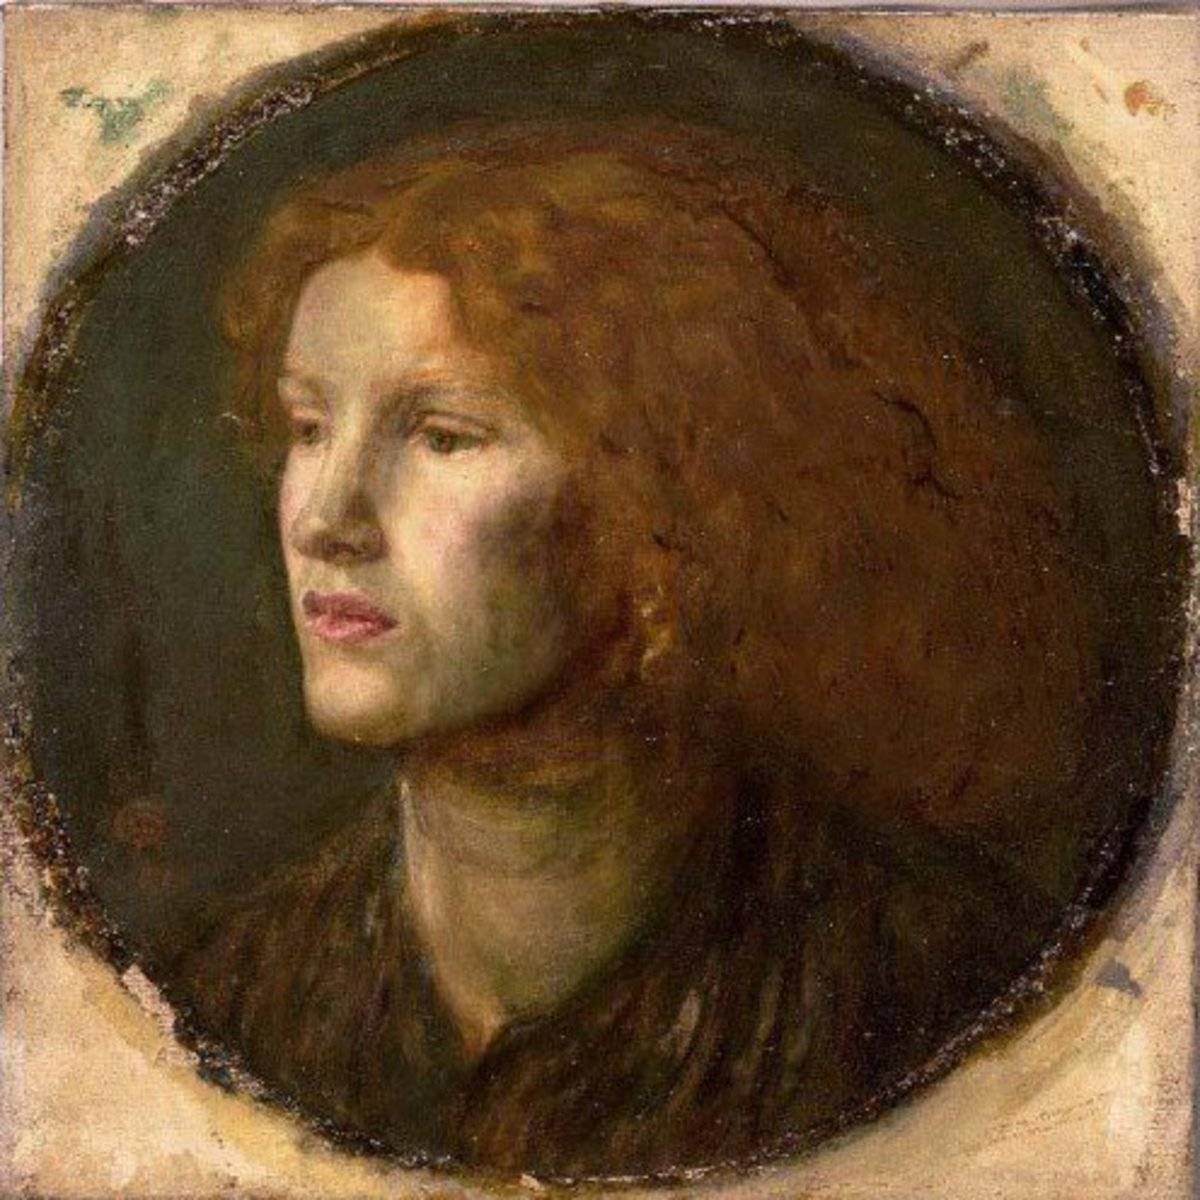 The Questionable Life of Pre-Raphaelite Art Model Fanny Cornforth